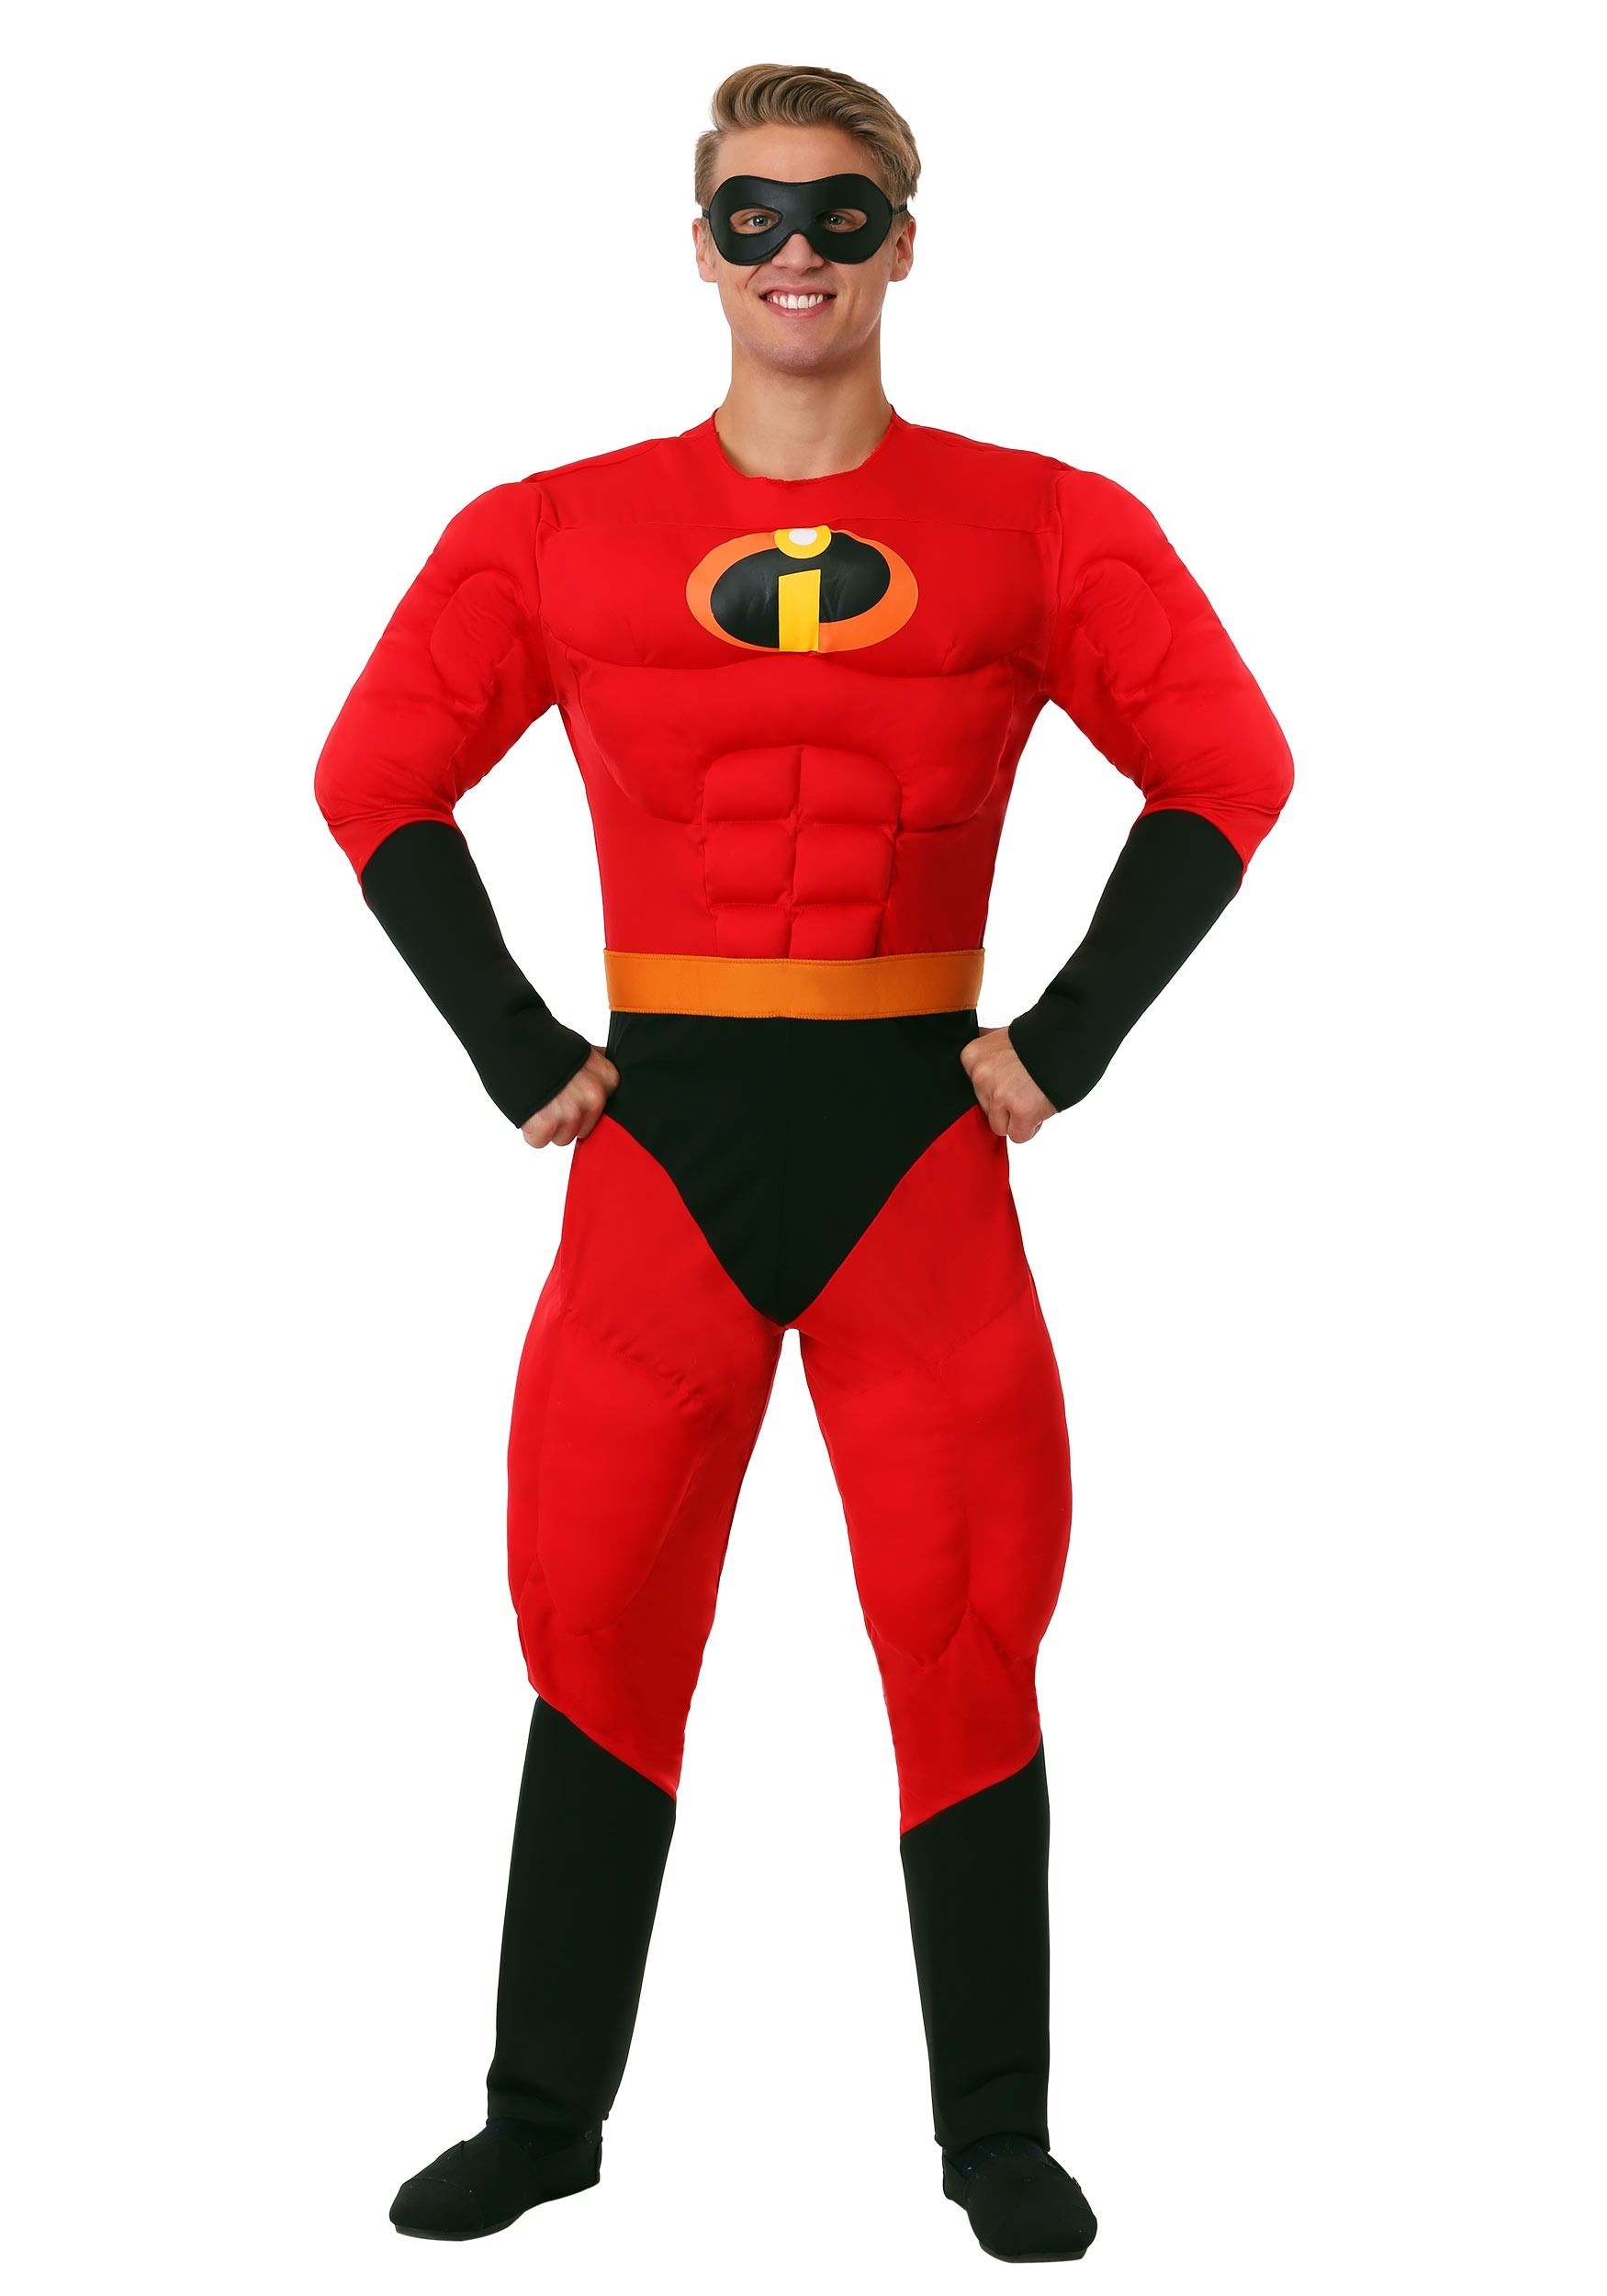 Mr Incredible Costume  sc 1 st  Halloween Costume : costume incredibles  - Germanpascual.Com